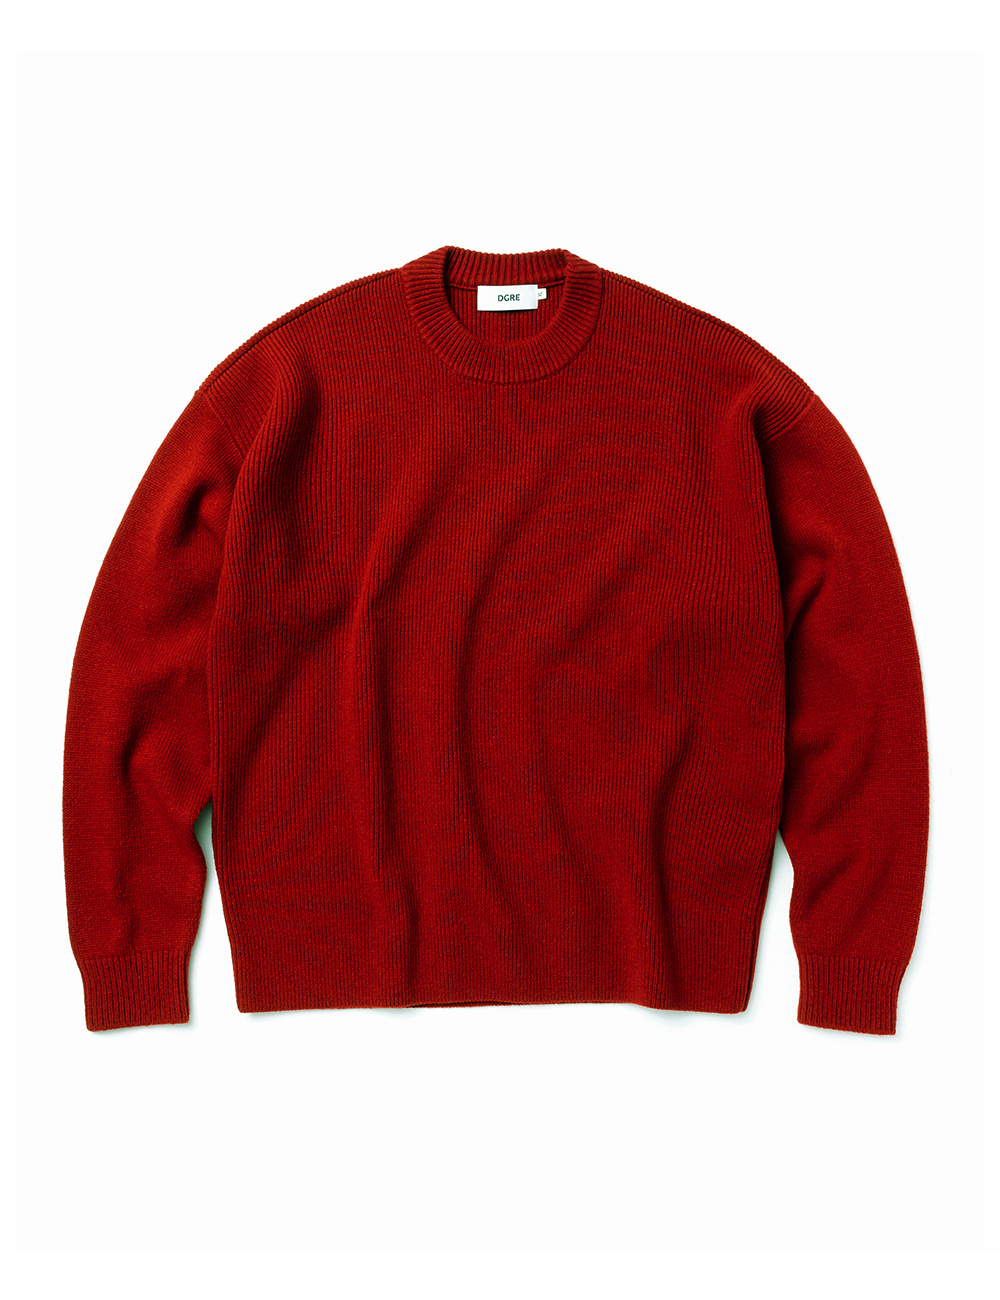 [DGRE] ANGEL WOOL RIB CREW KNIT (RED)